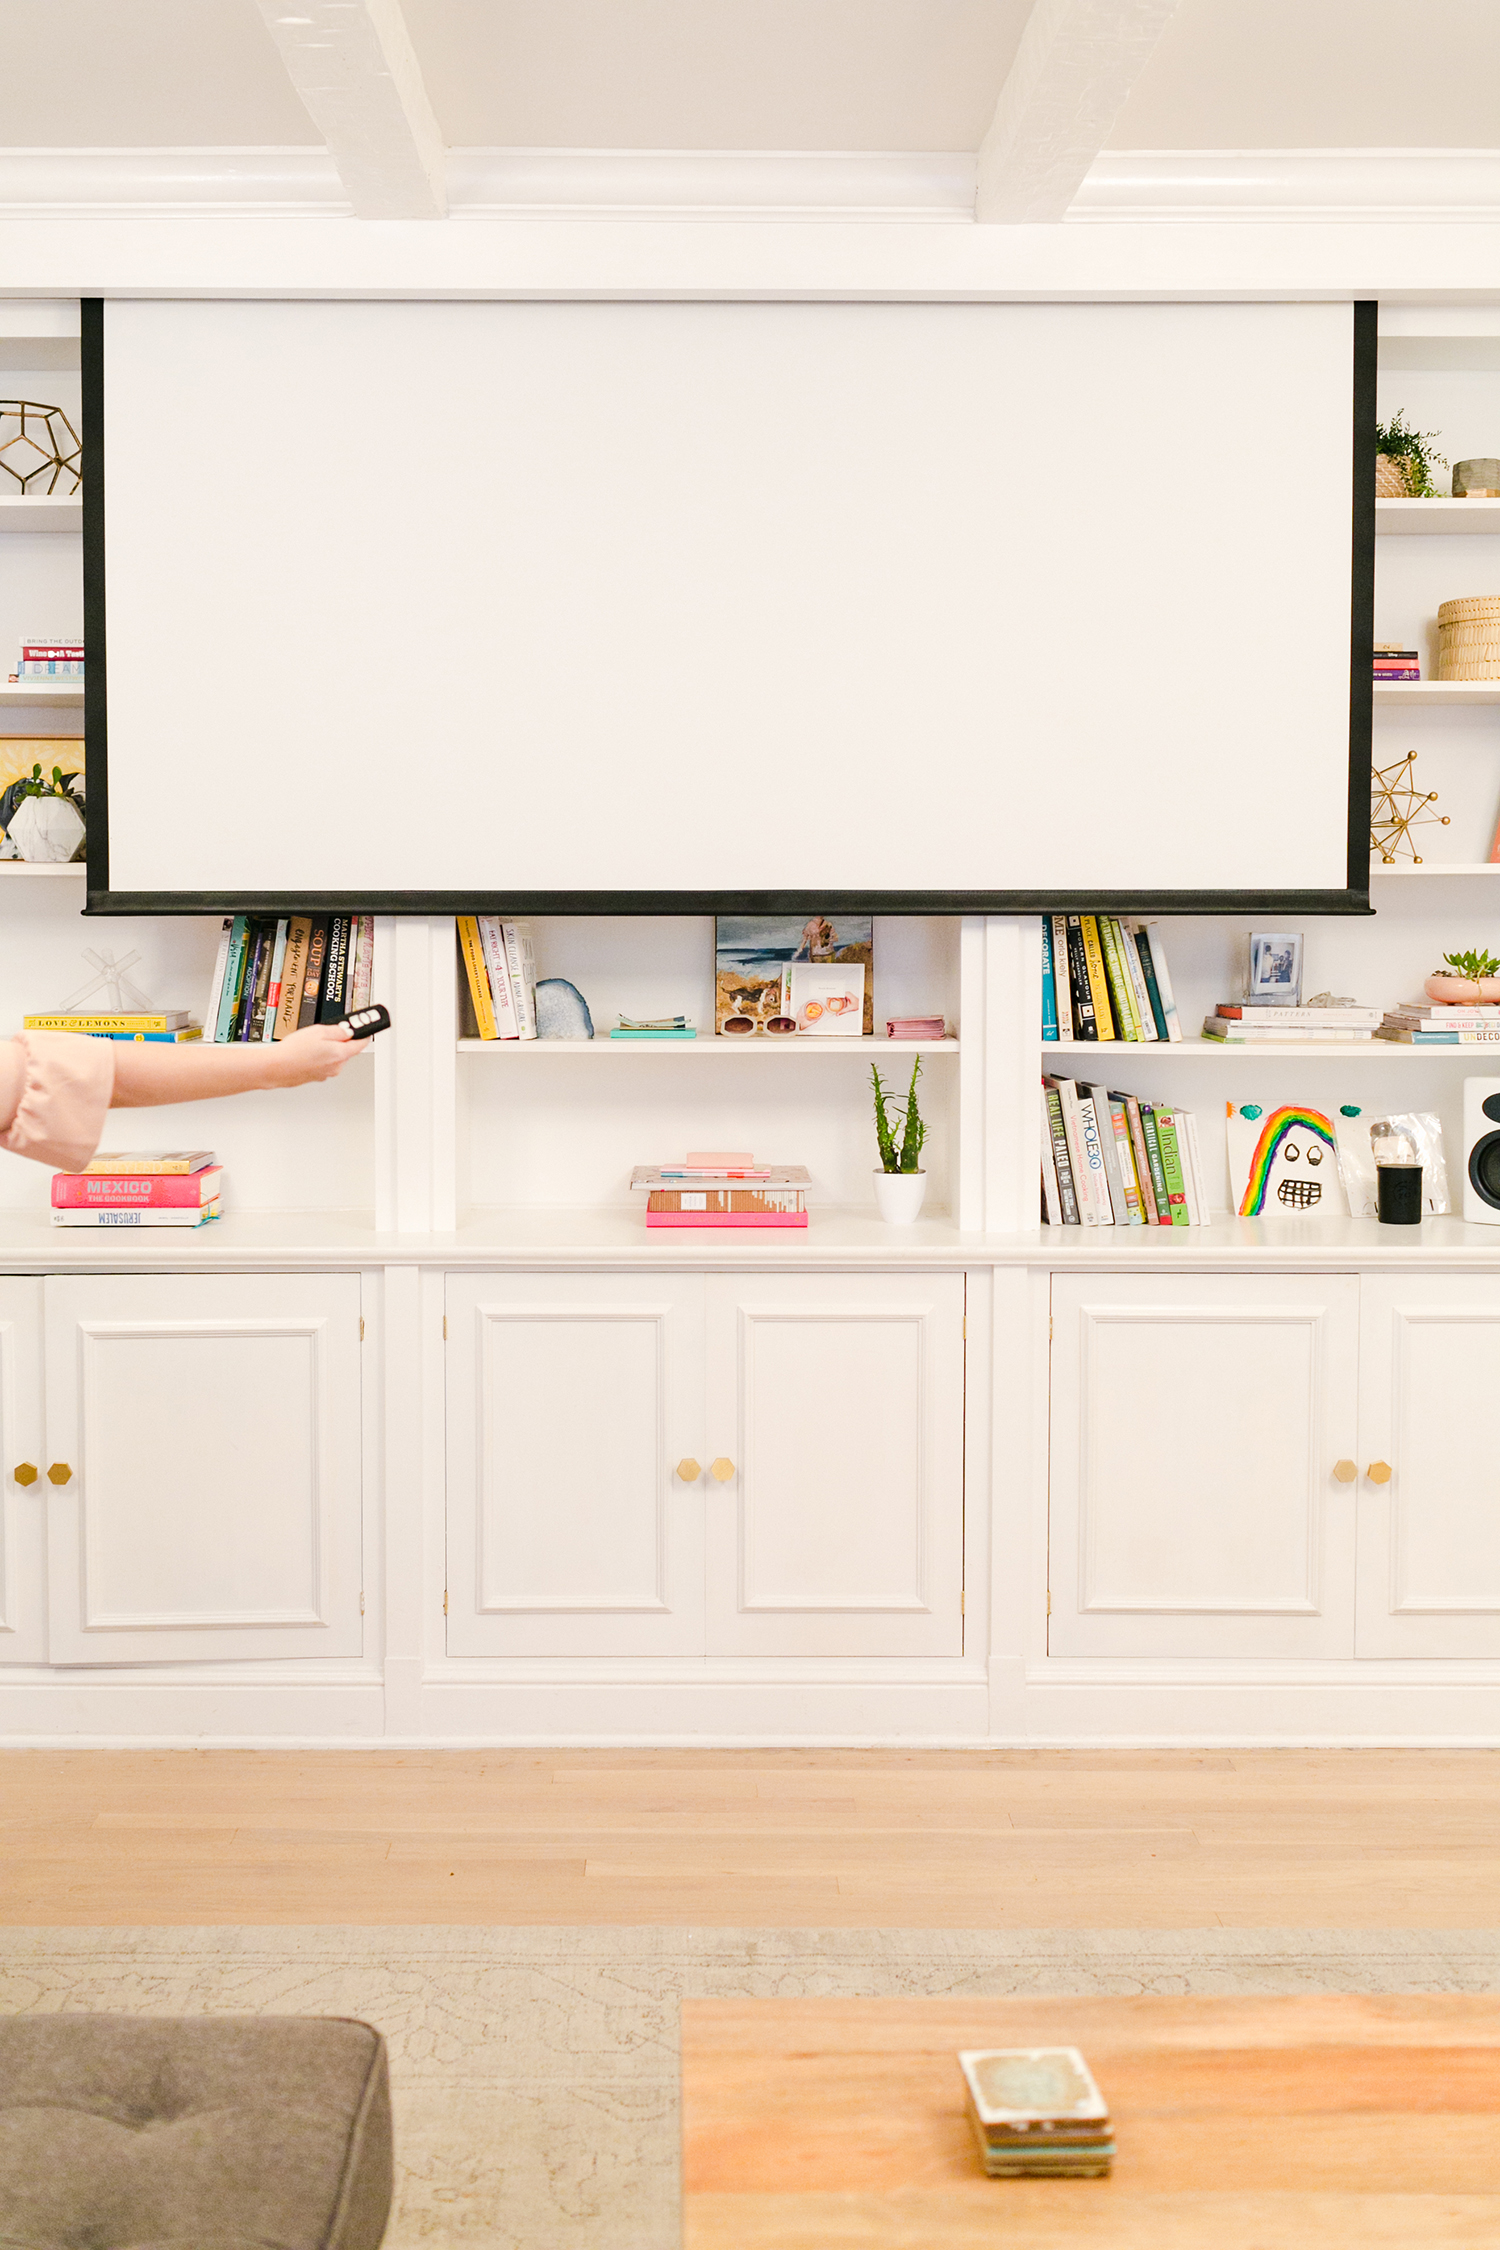 Project Projector- Why we traded in our television for a projector